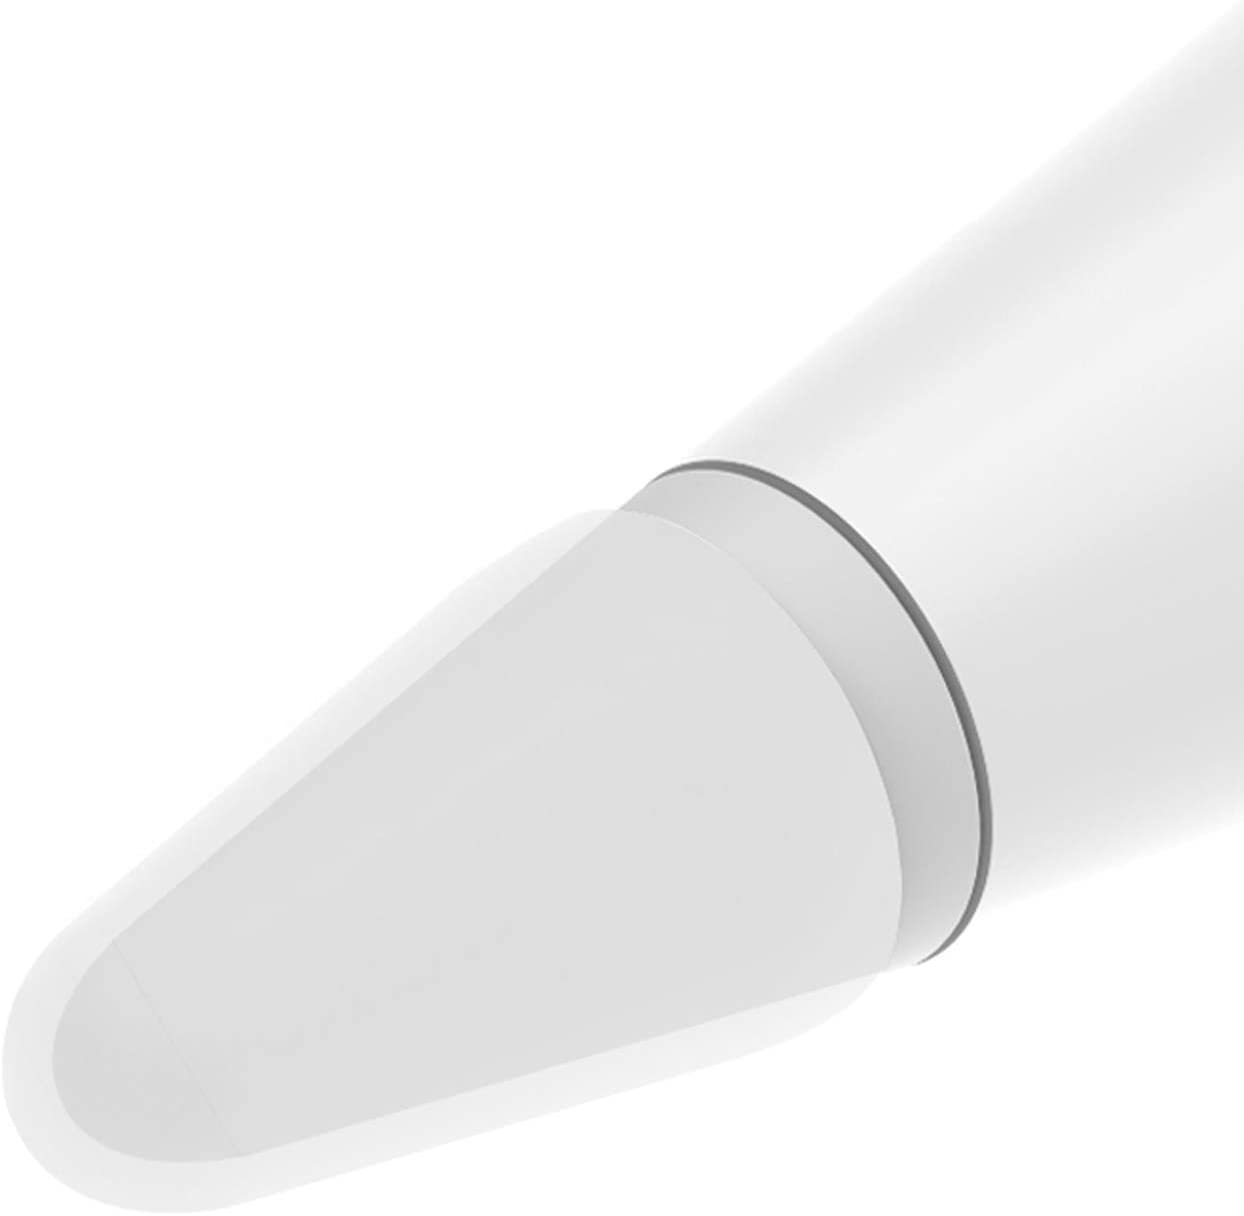 BLEAKTEIR Apple Pencil Nibs Writing Cover for Apple Pencil Protector Silicone Cover for Noiseless Drawing Compatible with IPencil 1&2 (Semitransparent-White)